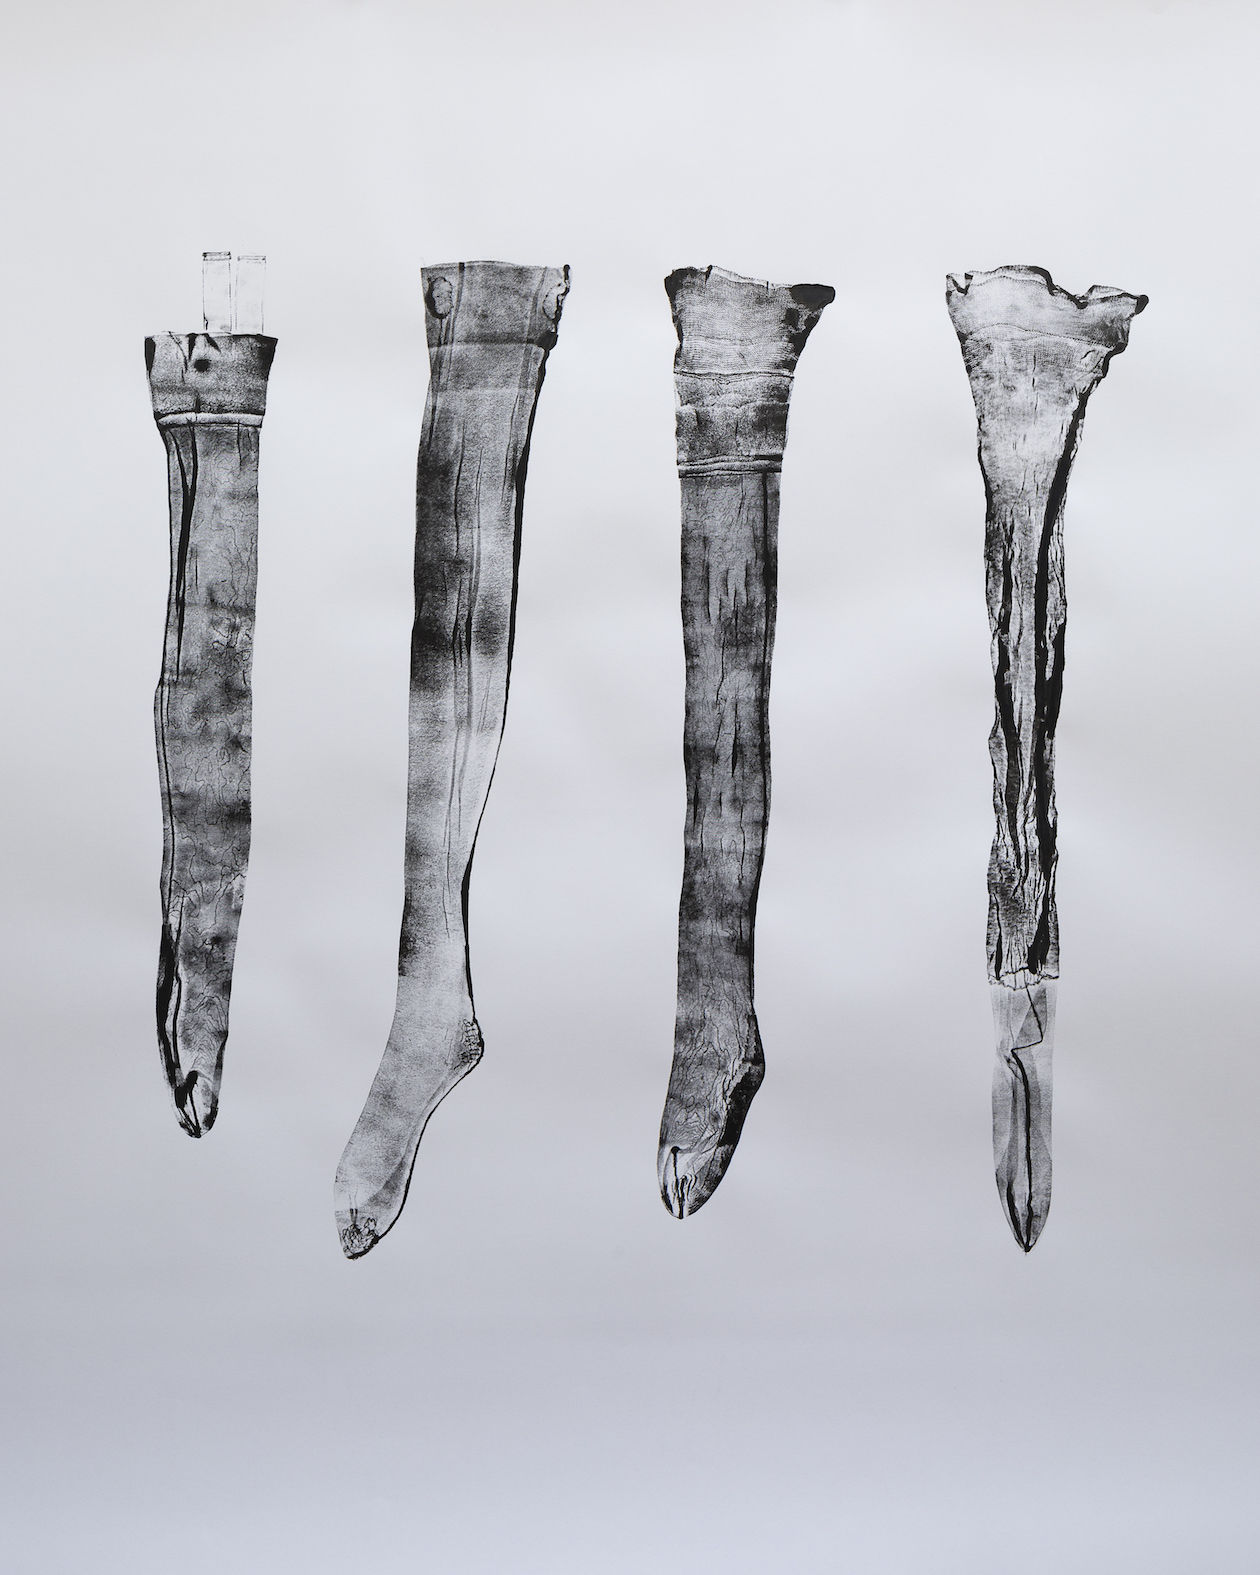 15 Stockings (Make do and Mend) I, 2019, ink on paper, 150 x 151 cm, photo Andrew Youngson